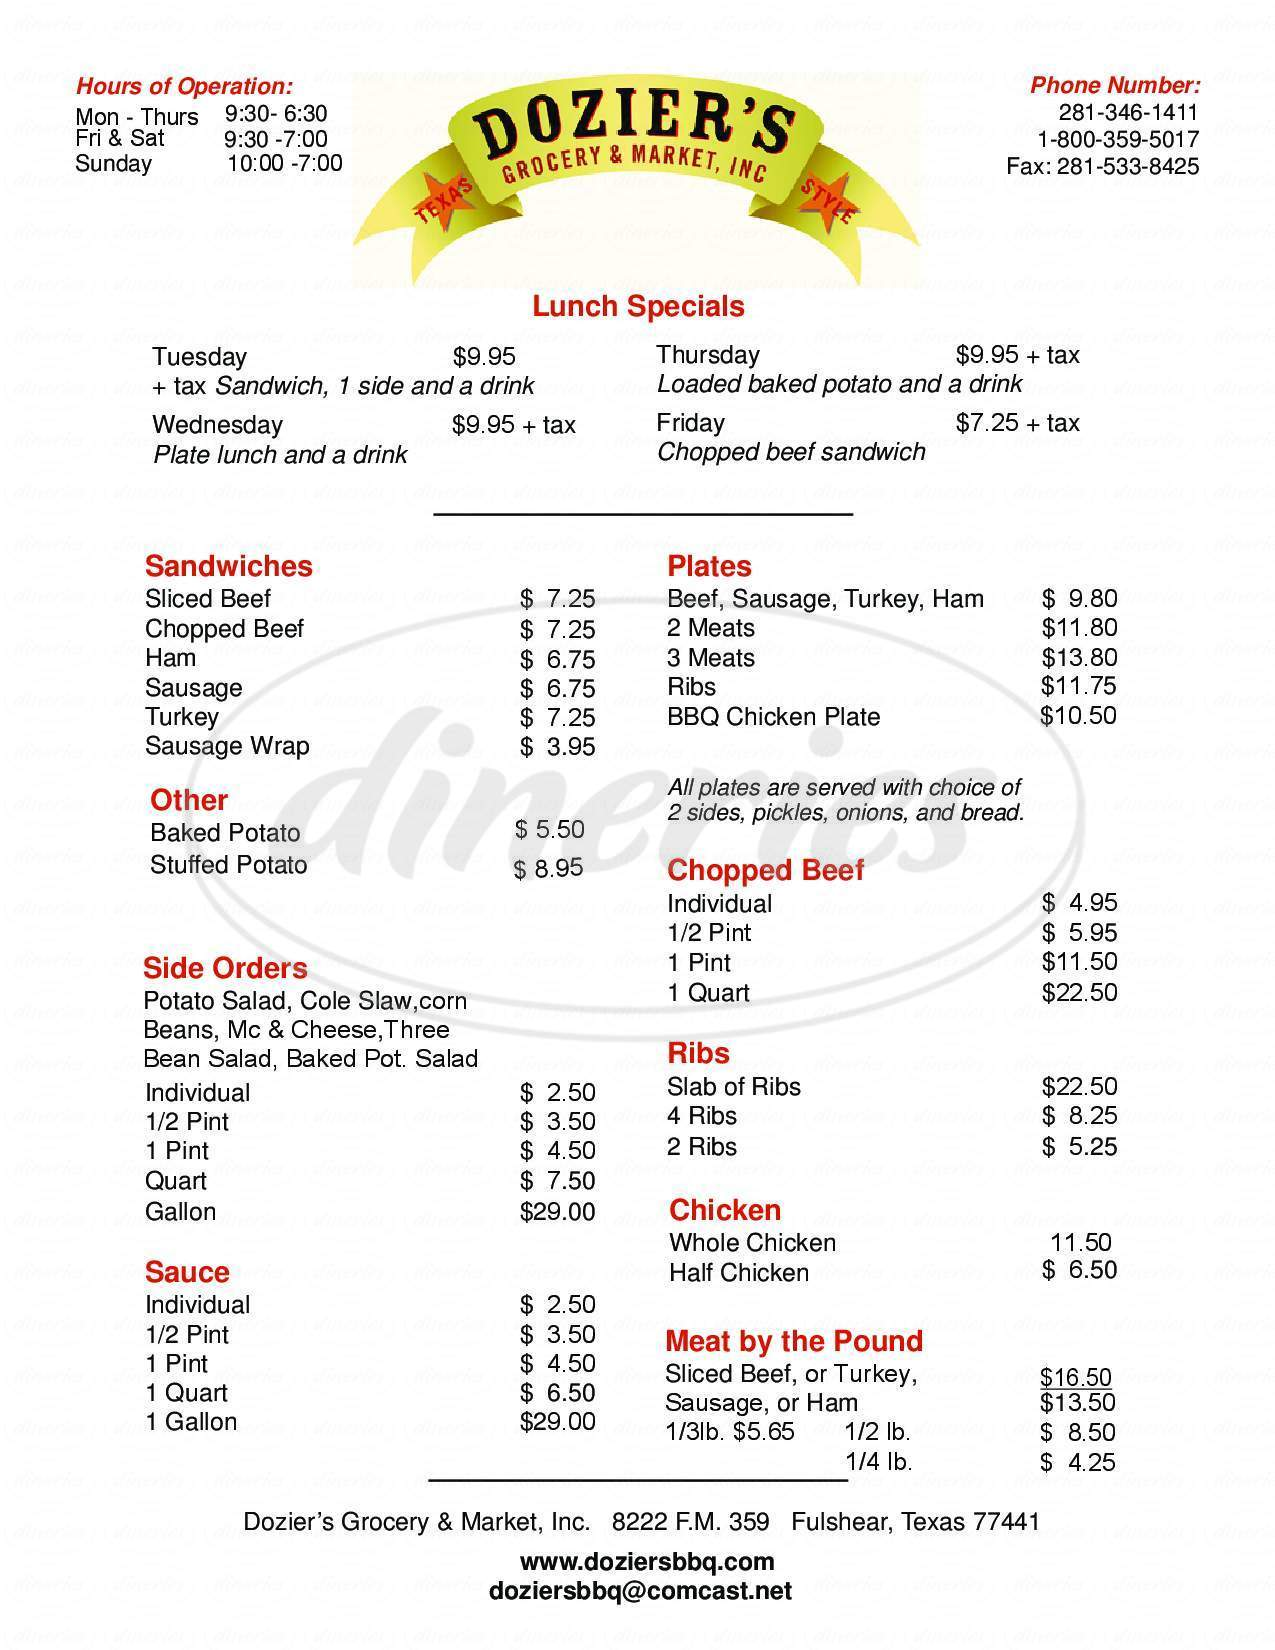 menu for Dozier's Grocery & Market